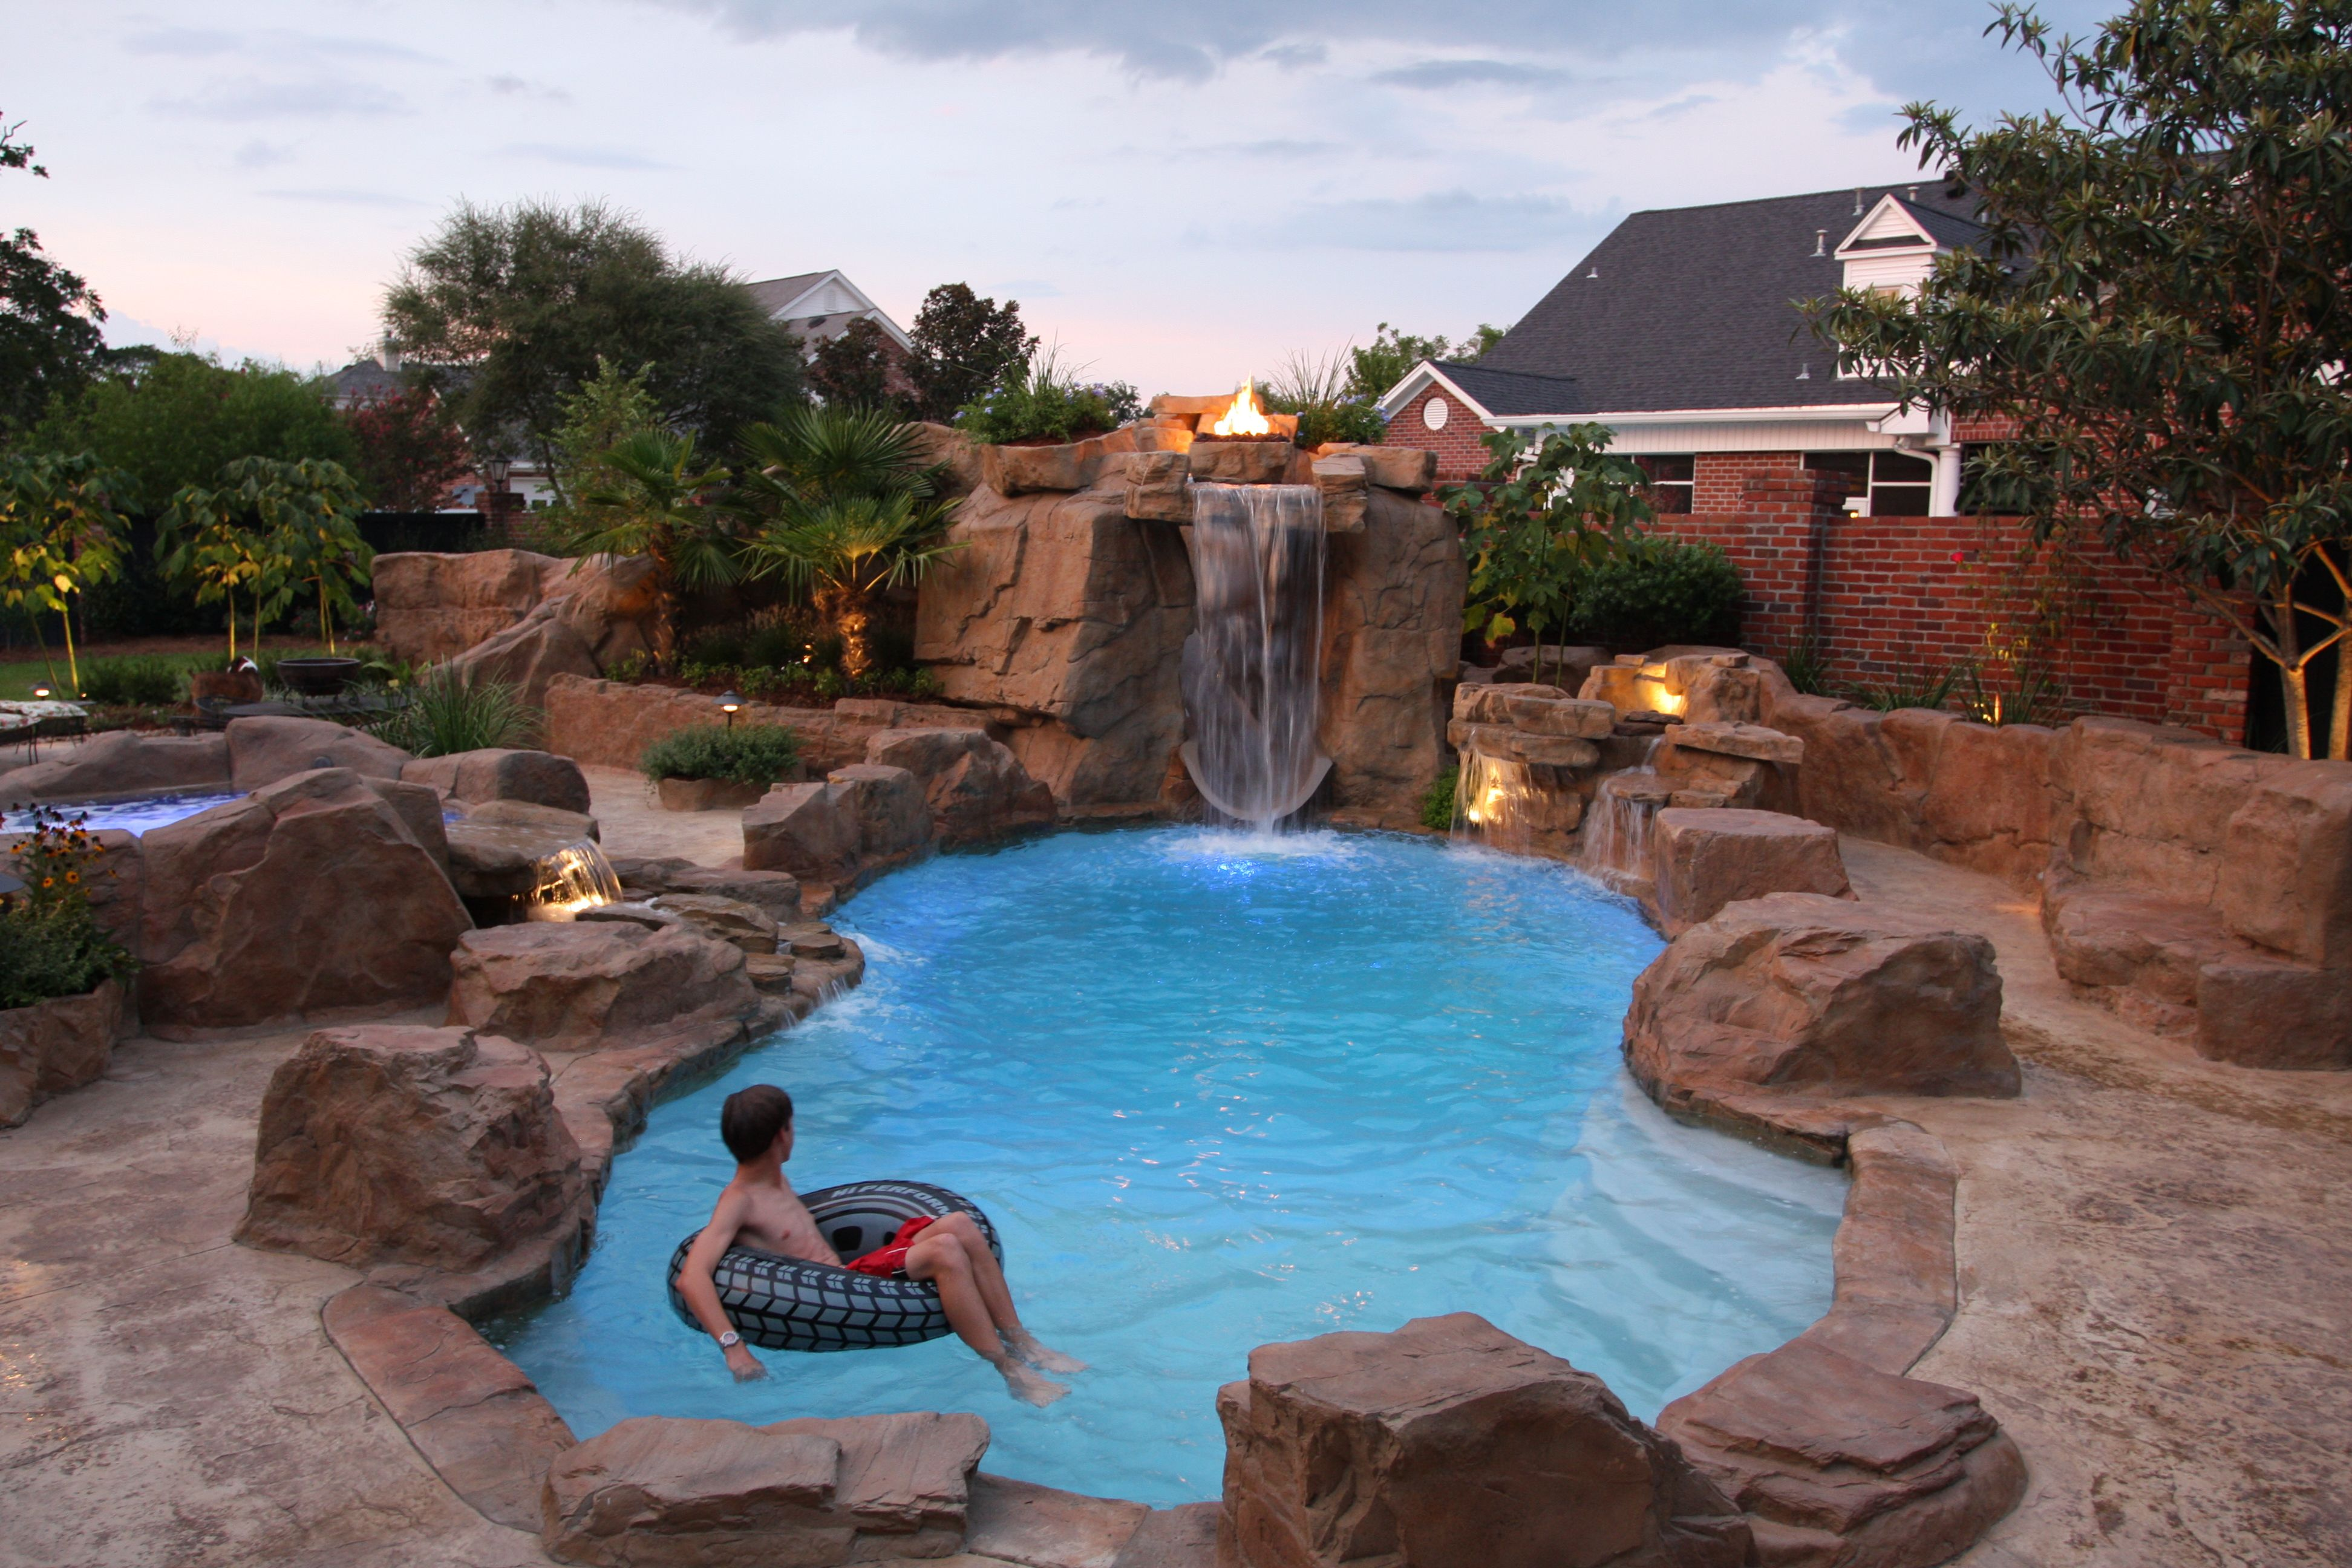 Charming Inground Fiberglass Swimming Pool By Royal Fiberglass Pools, A Viking Pools  / Trilogy Pools Company. Rico Rock Waterfall, Retaining Wall And Spa.